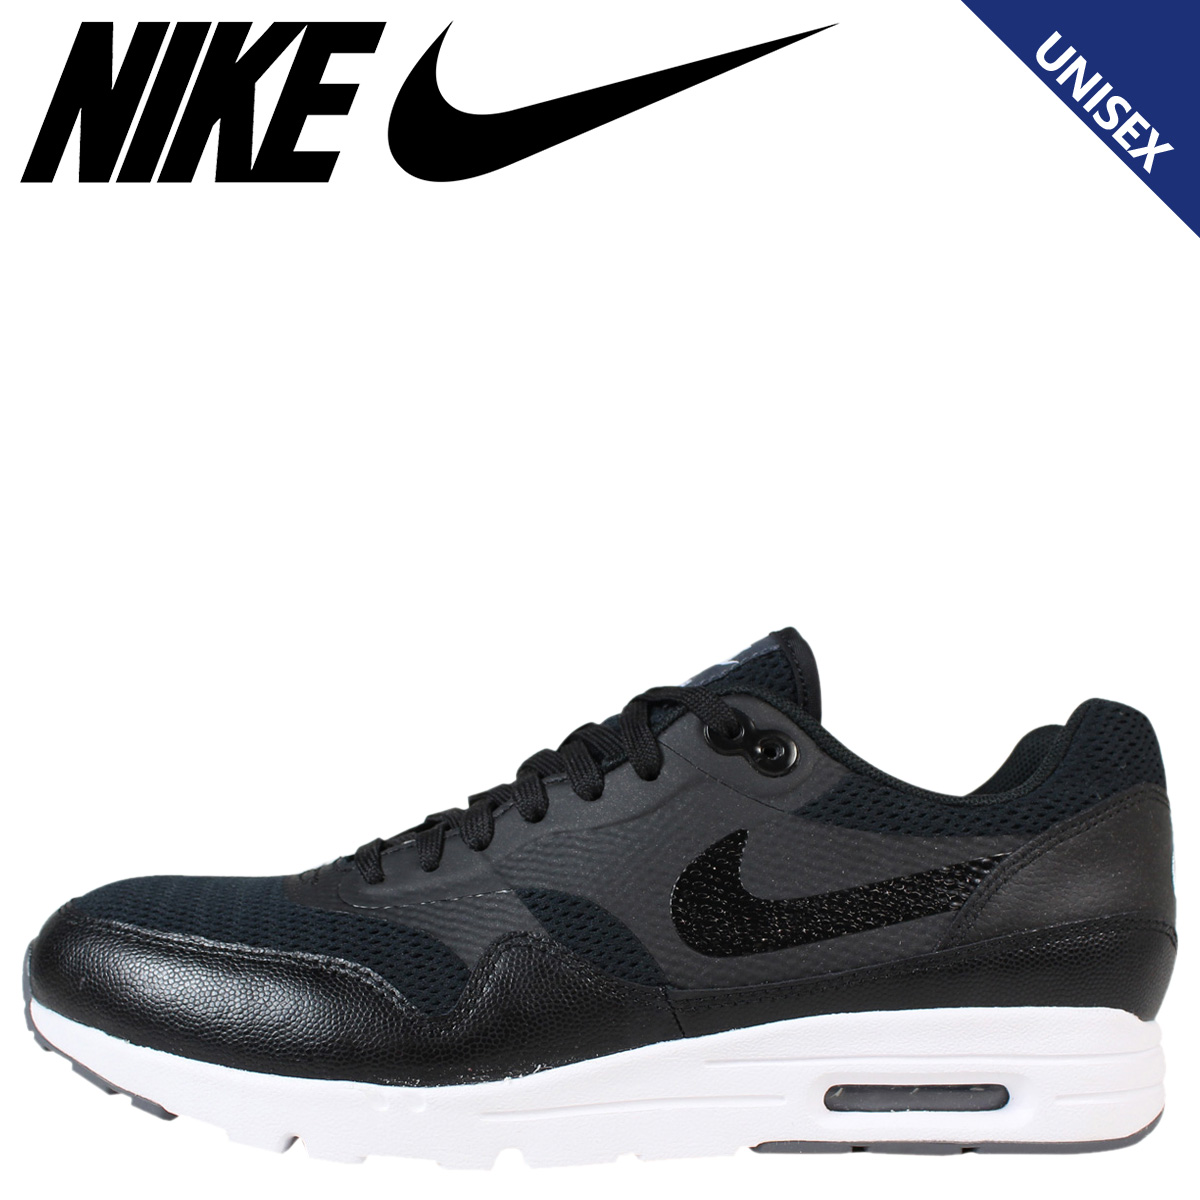 grande vente 0ca00 6ce1e NIKE Nike Air Max sneakers Womens WMNS AIR MAX 1 ULTRA ESSENTIALS Air Max 1  704993-009 men's shoes black